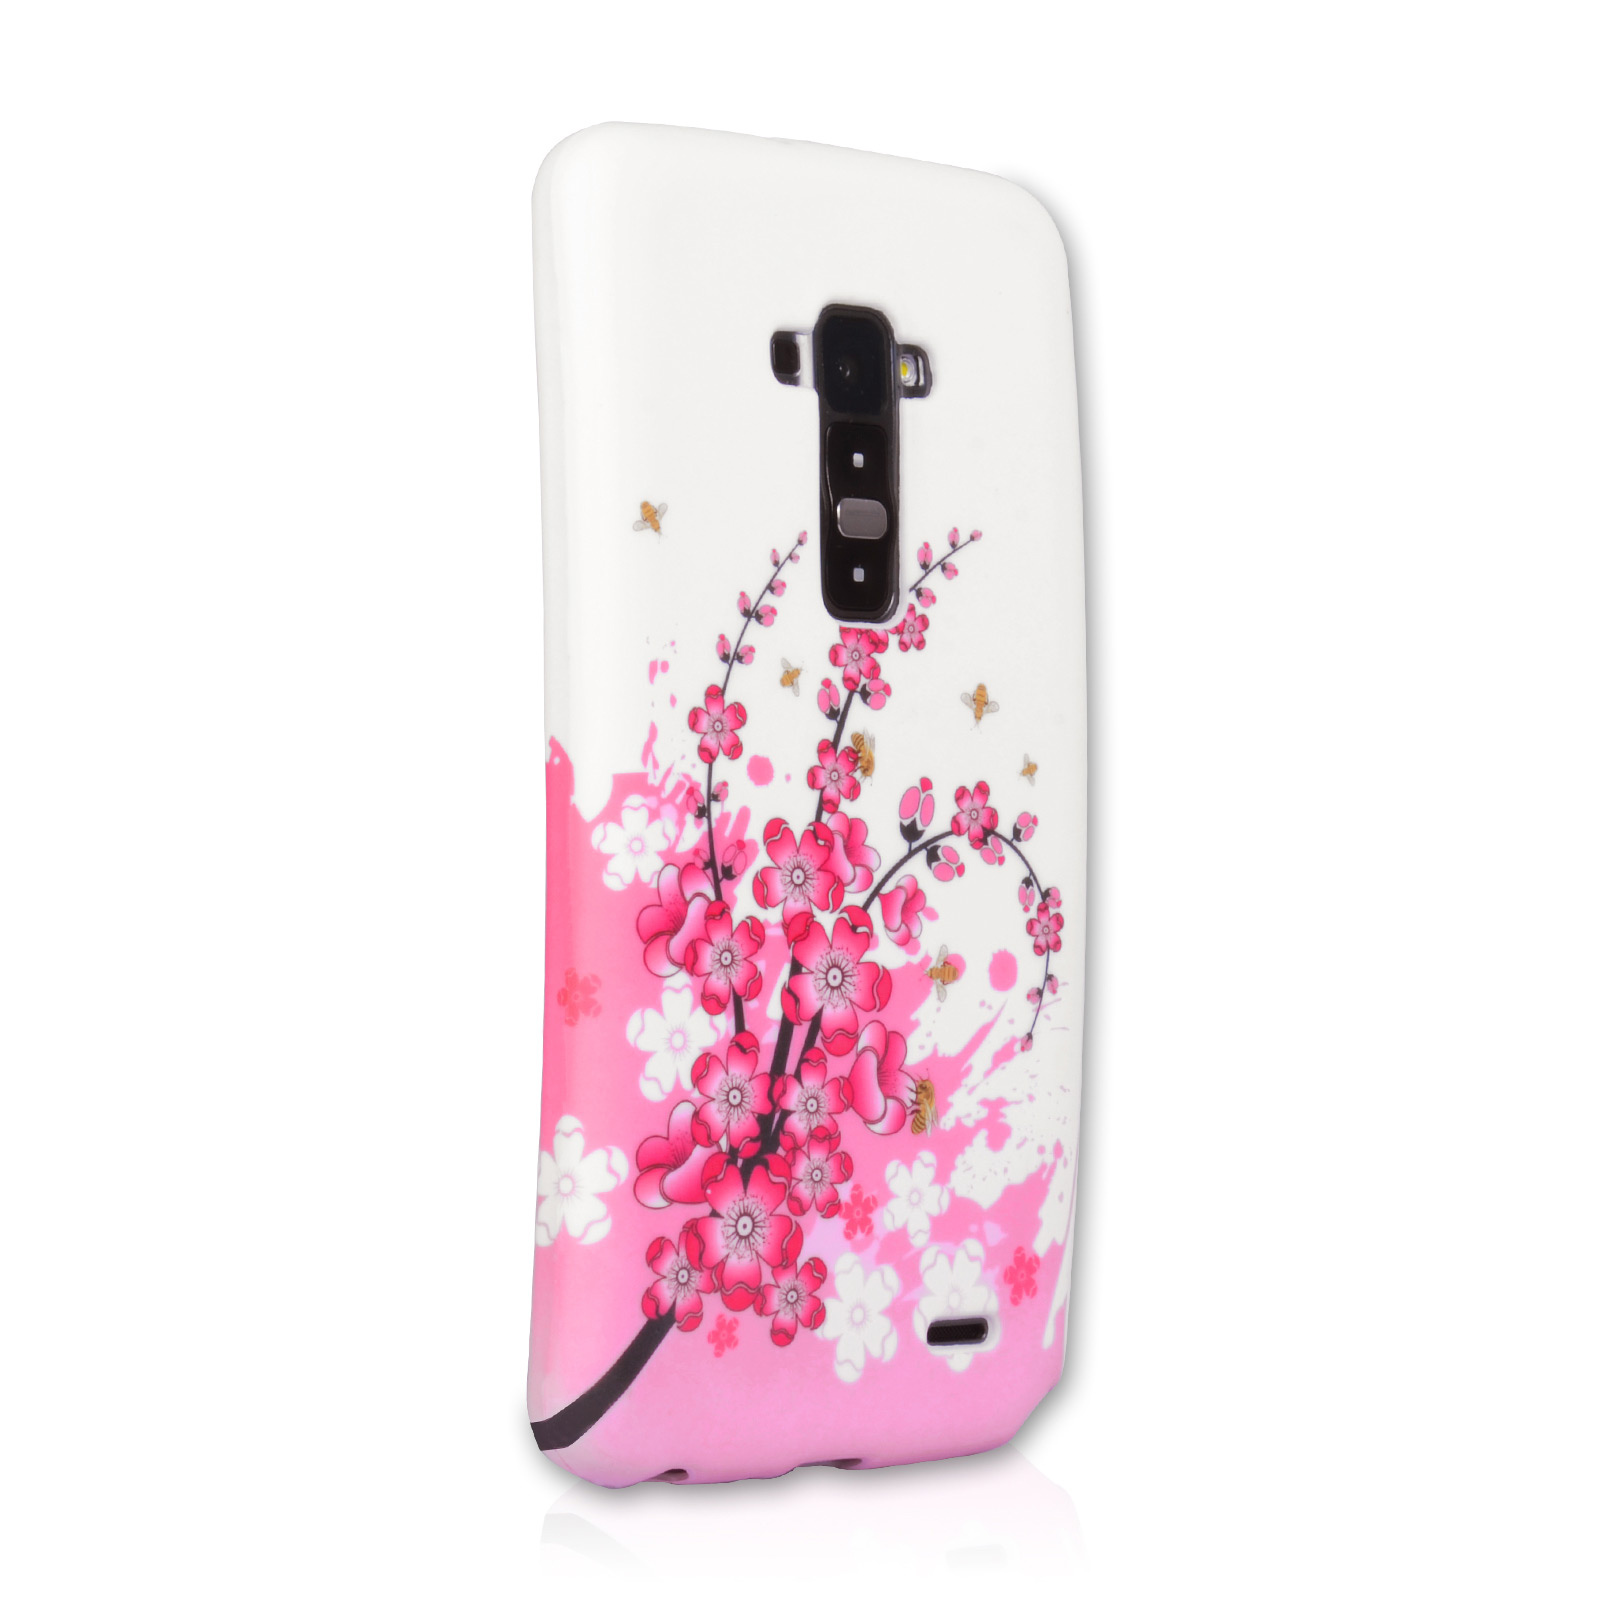 YouSave Accessories LG G Flex Floral Bee Silicone Gel Case